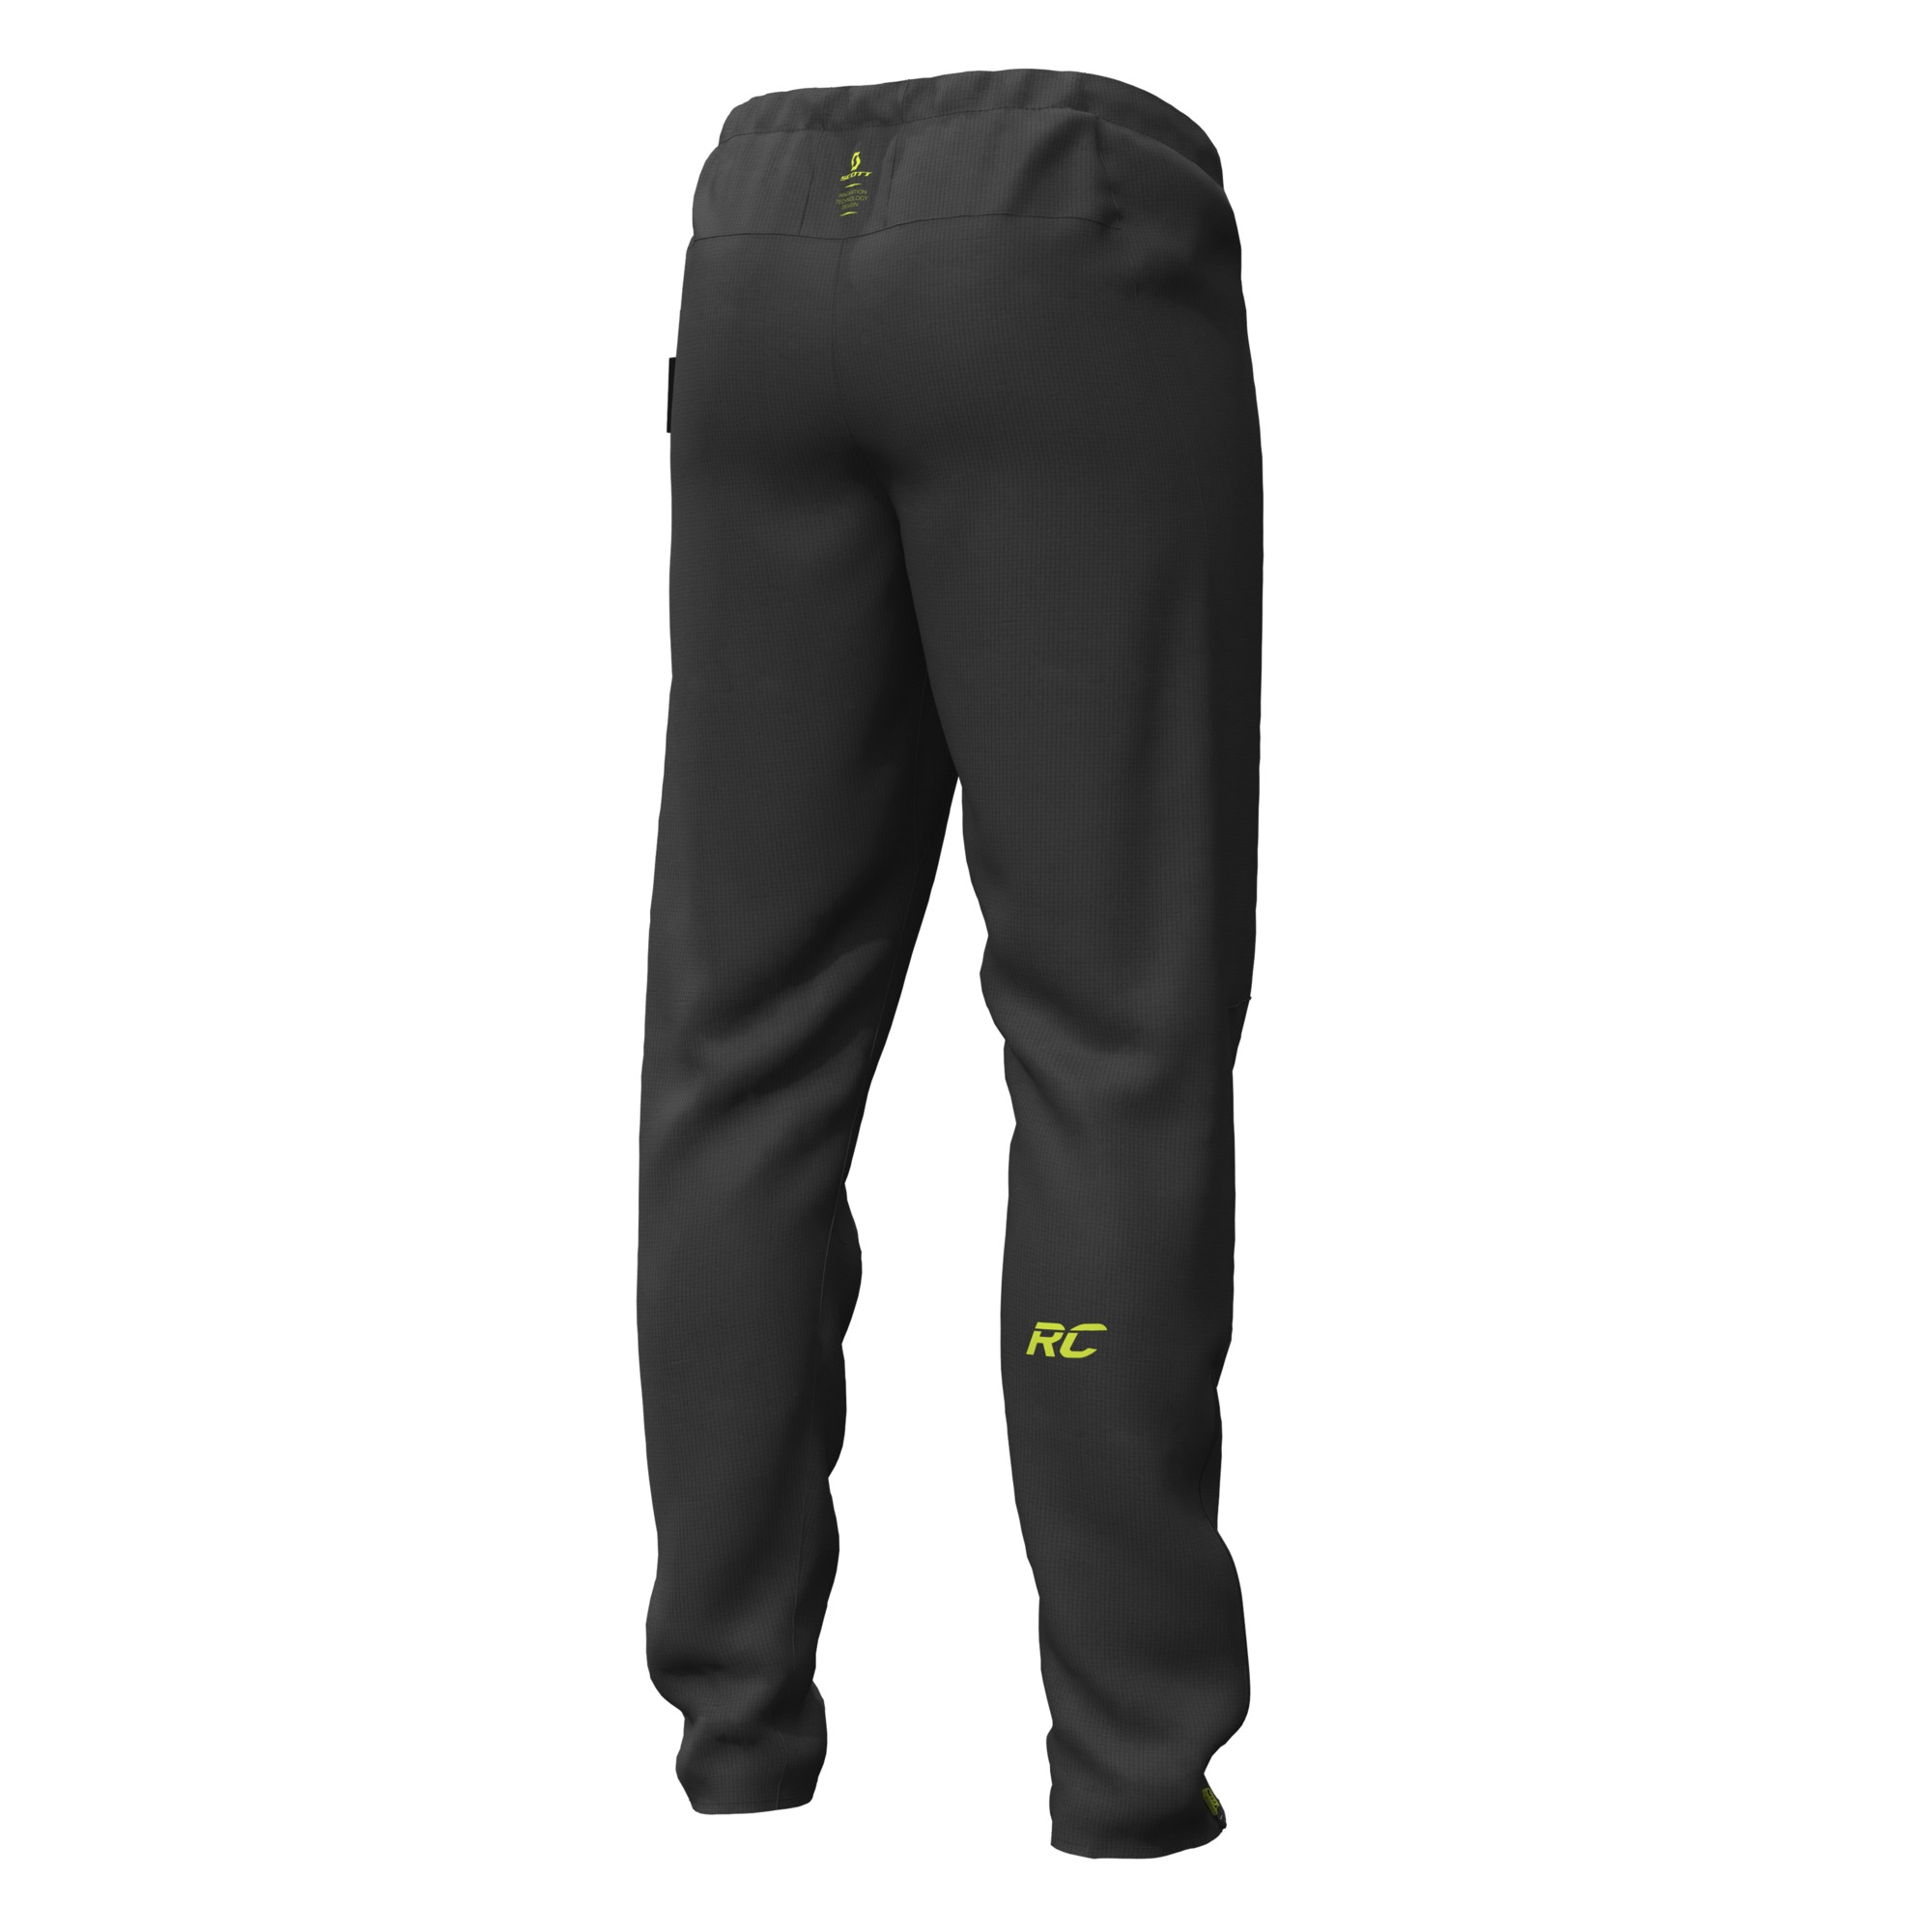 Pantalon imperméable SCOTT RC Run WP